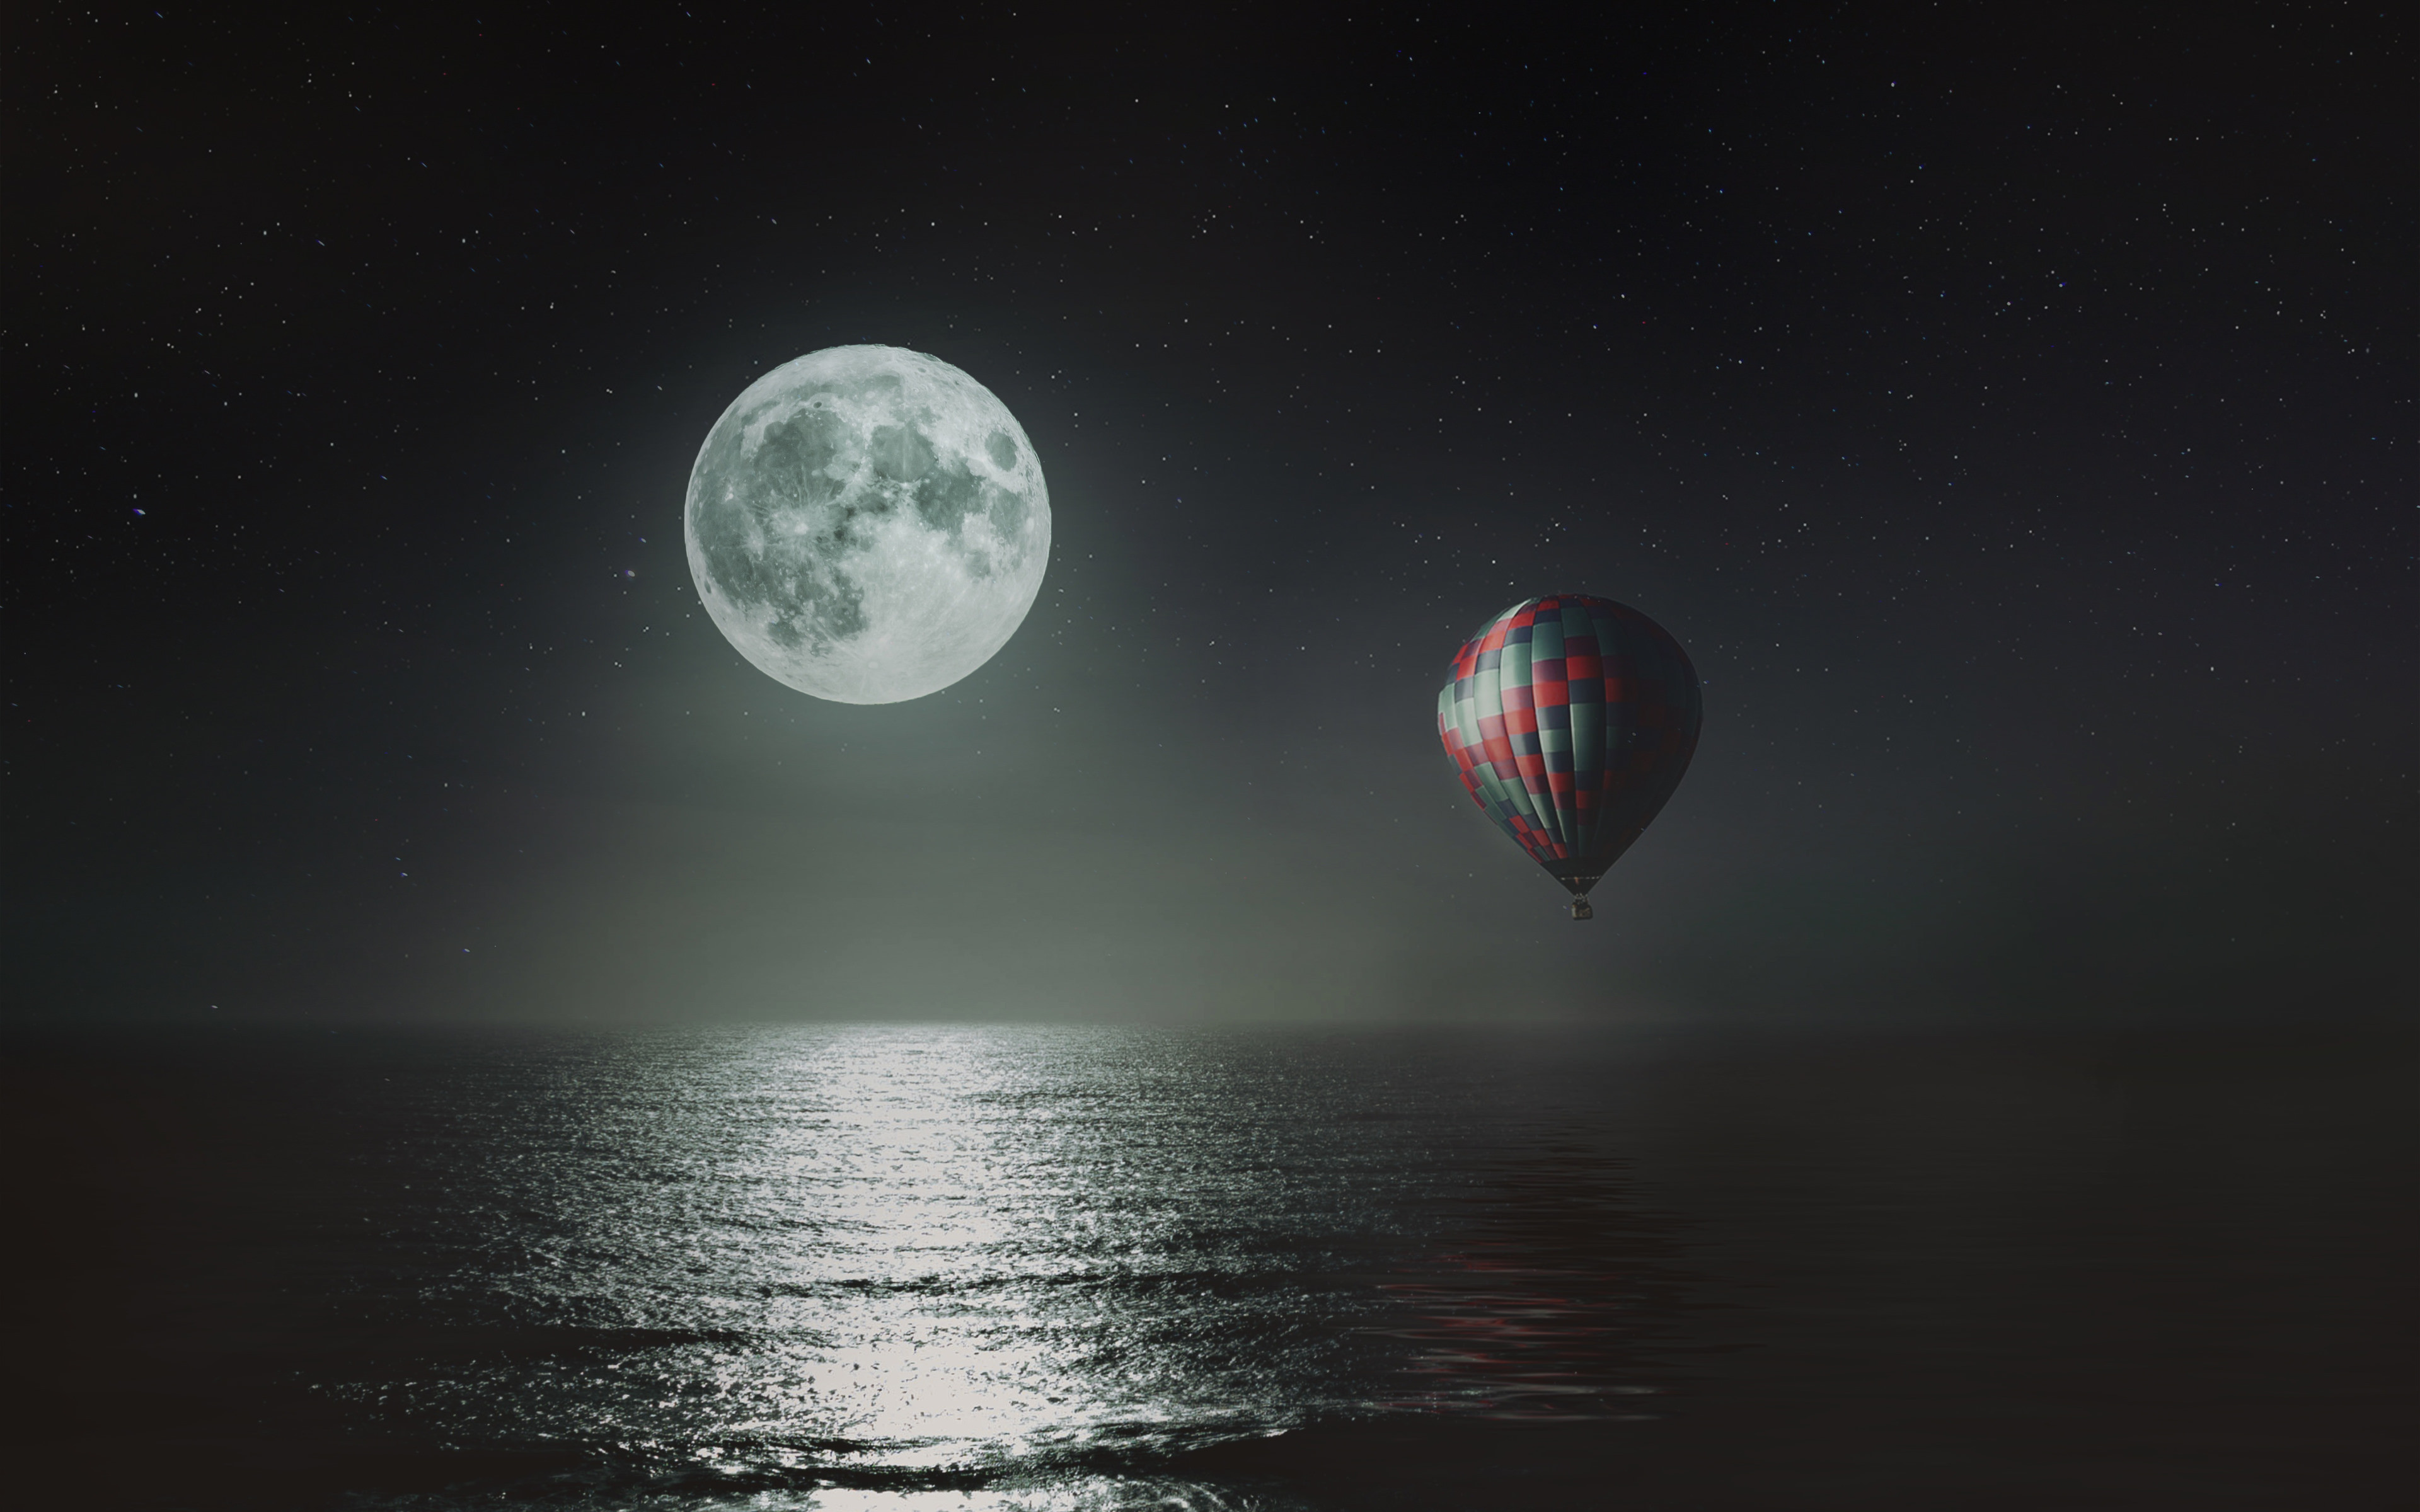 Hot air balloon over the night sky wallpaper 3840x2400